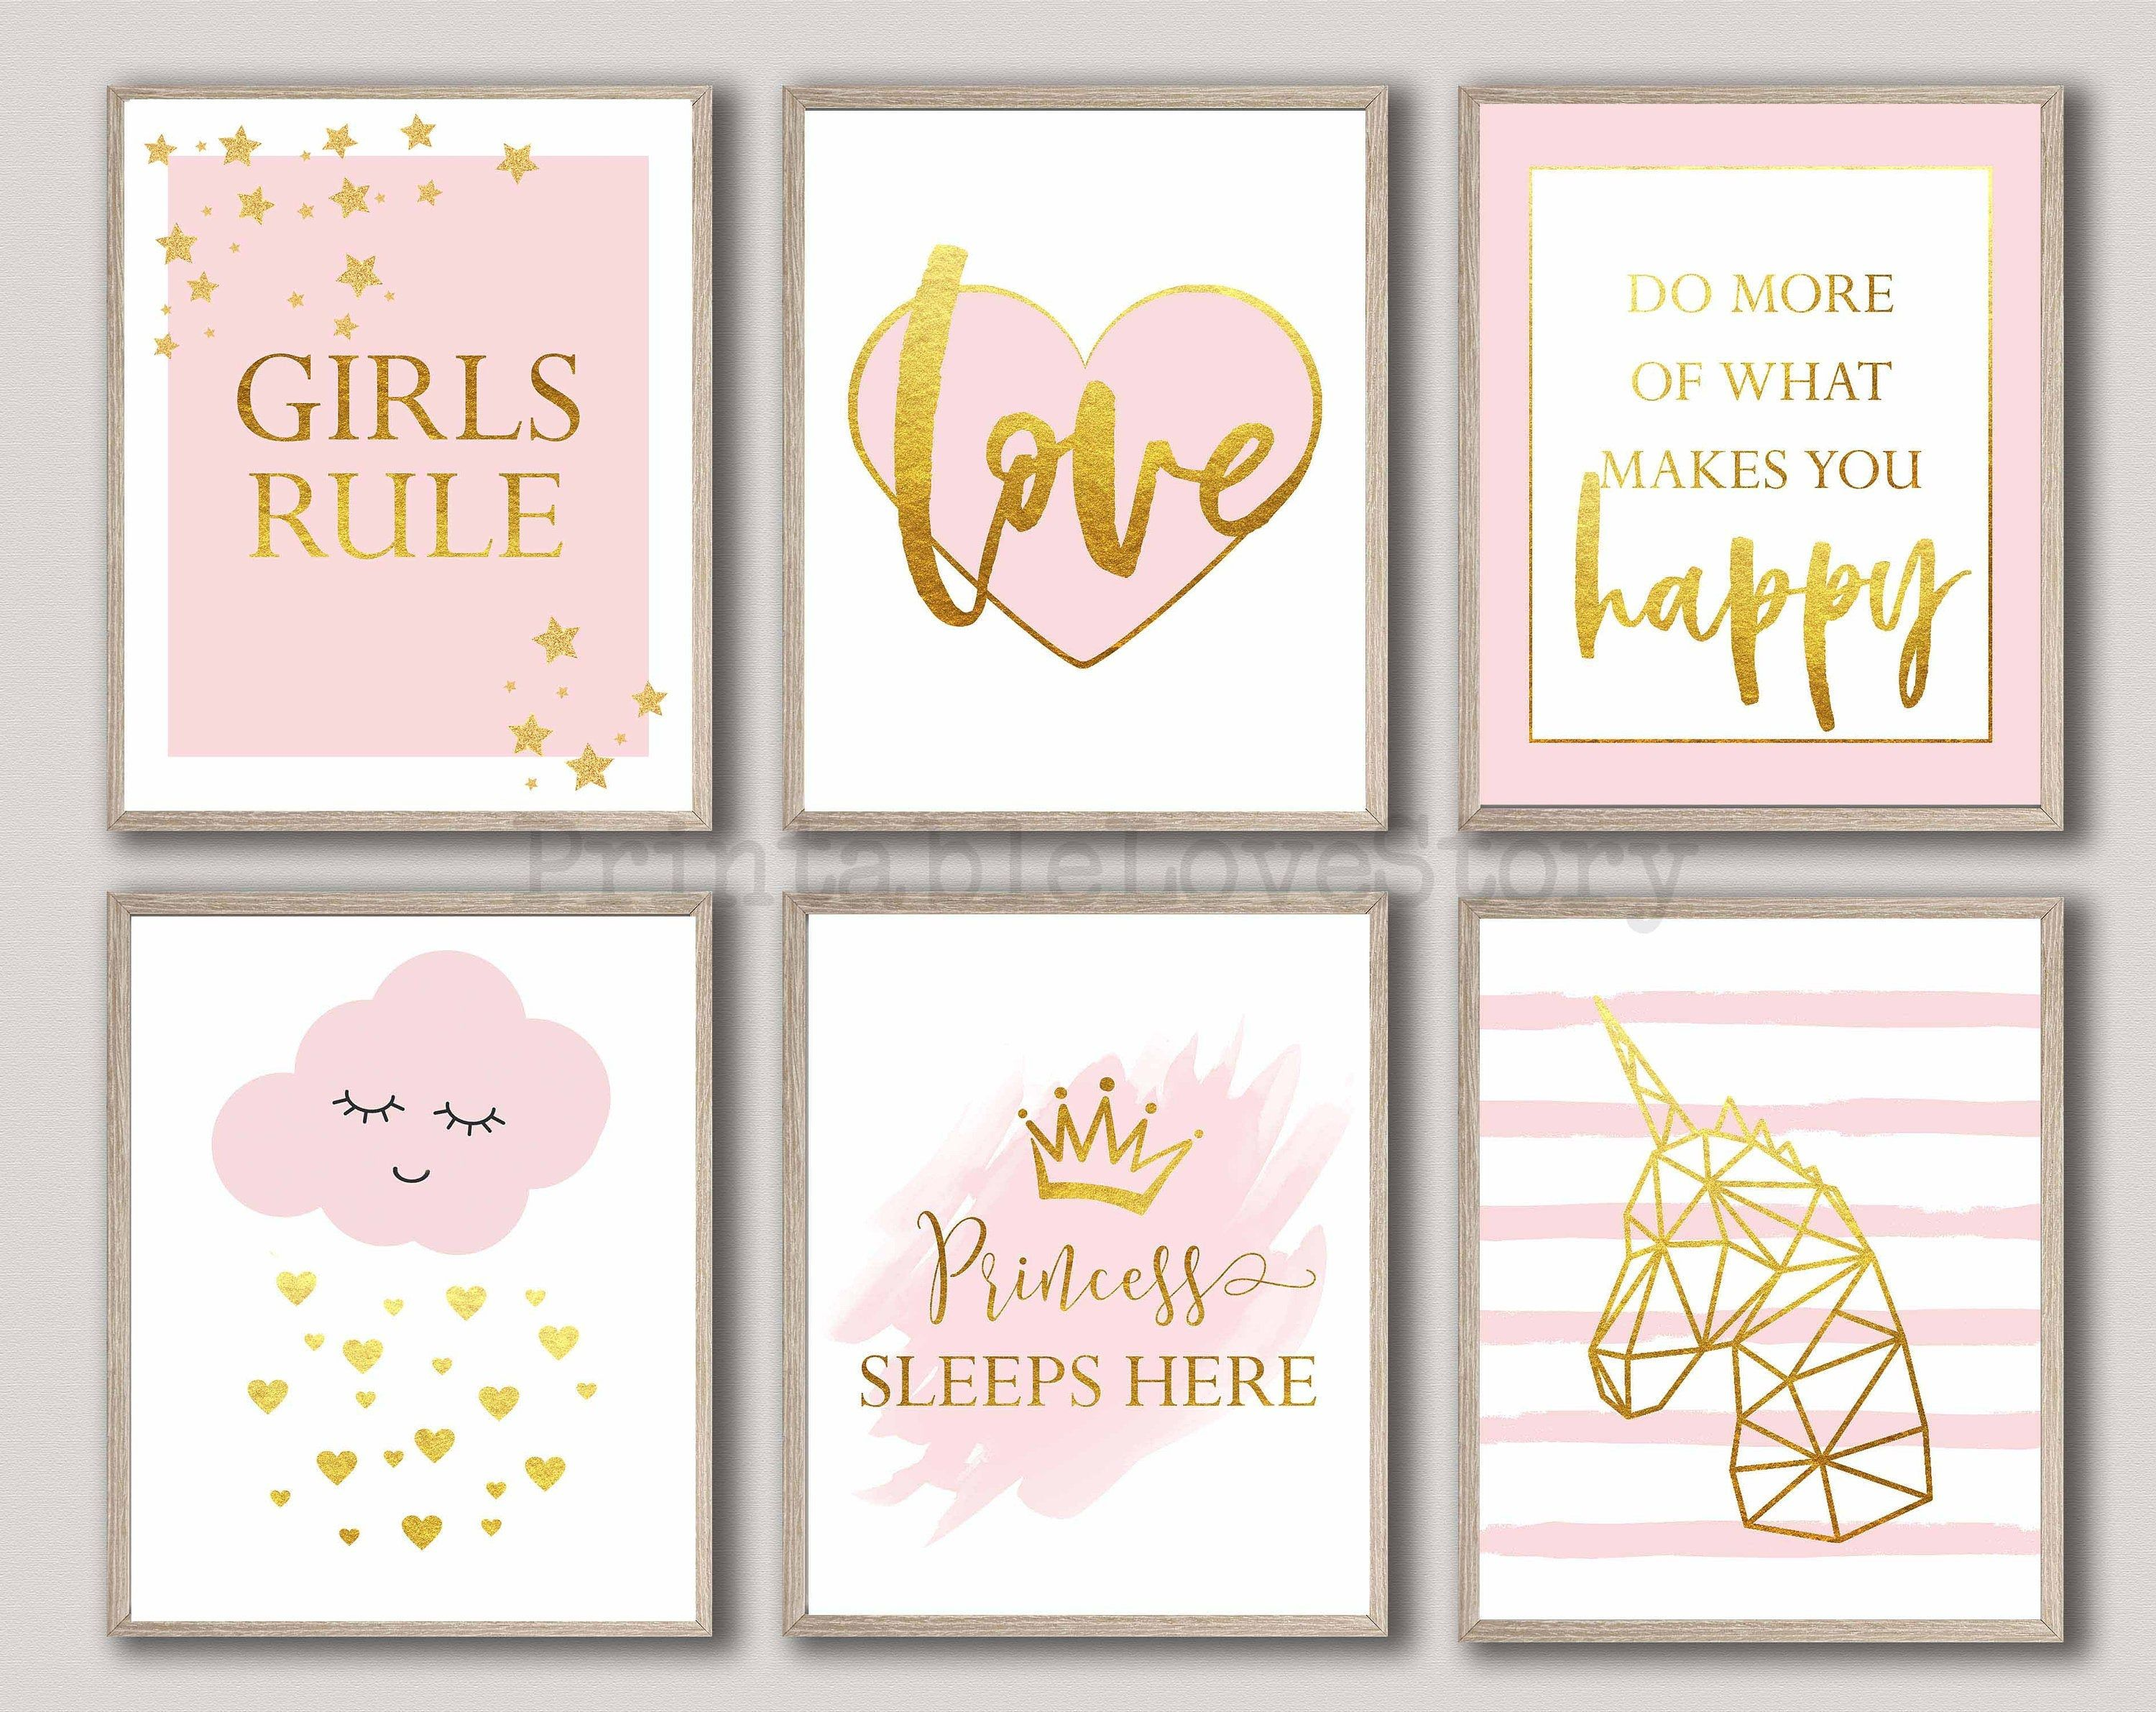 Pin By Linda Vzqz On Holly Room In 2021 Wall Art Girls Bedroom Pink Gold Nursery Nursery Wall Decor Girl Wall art for girls rooms